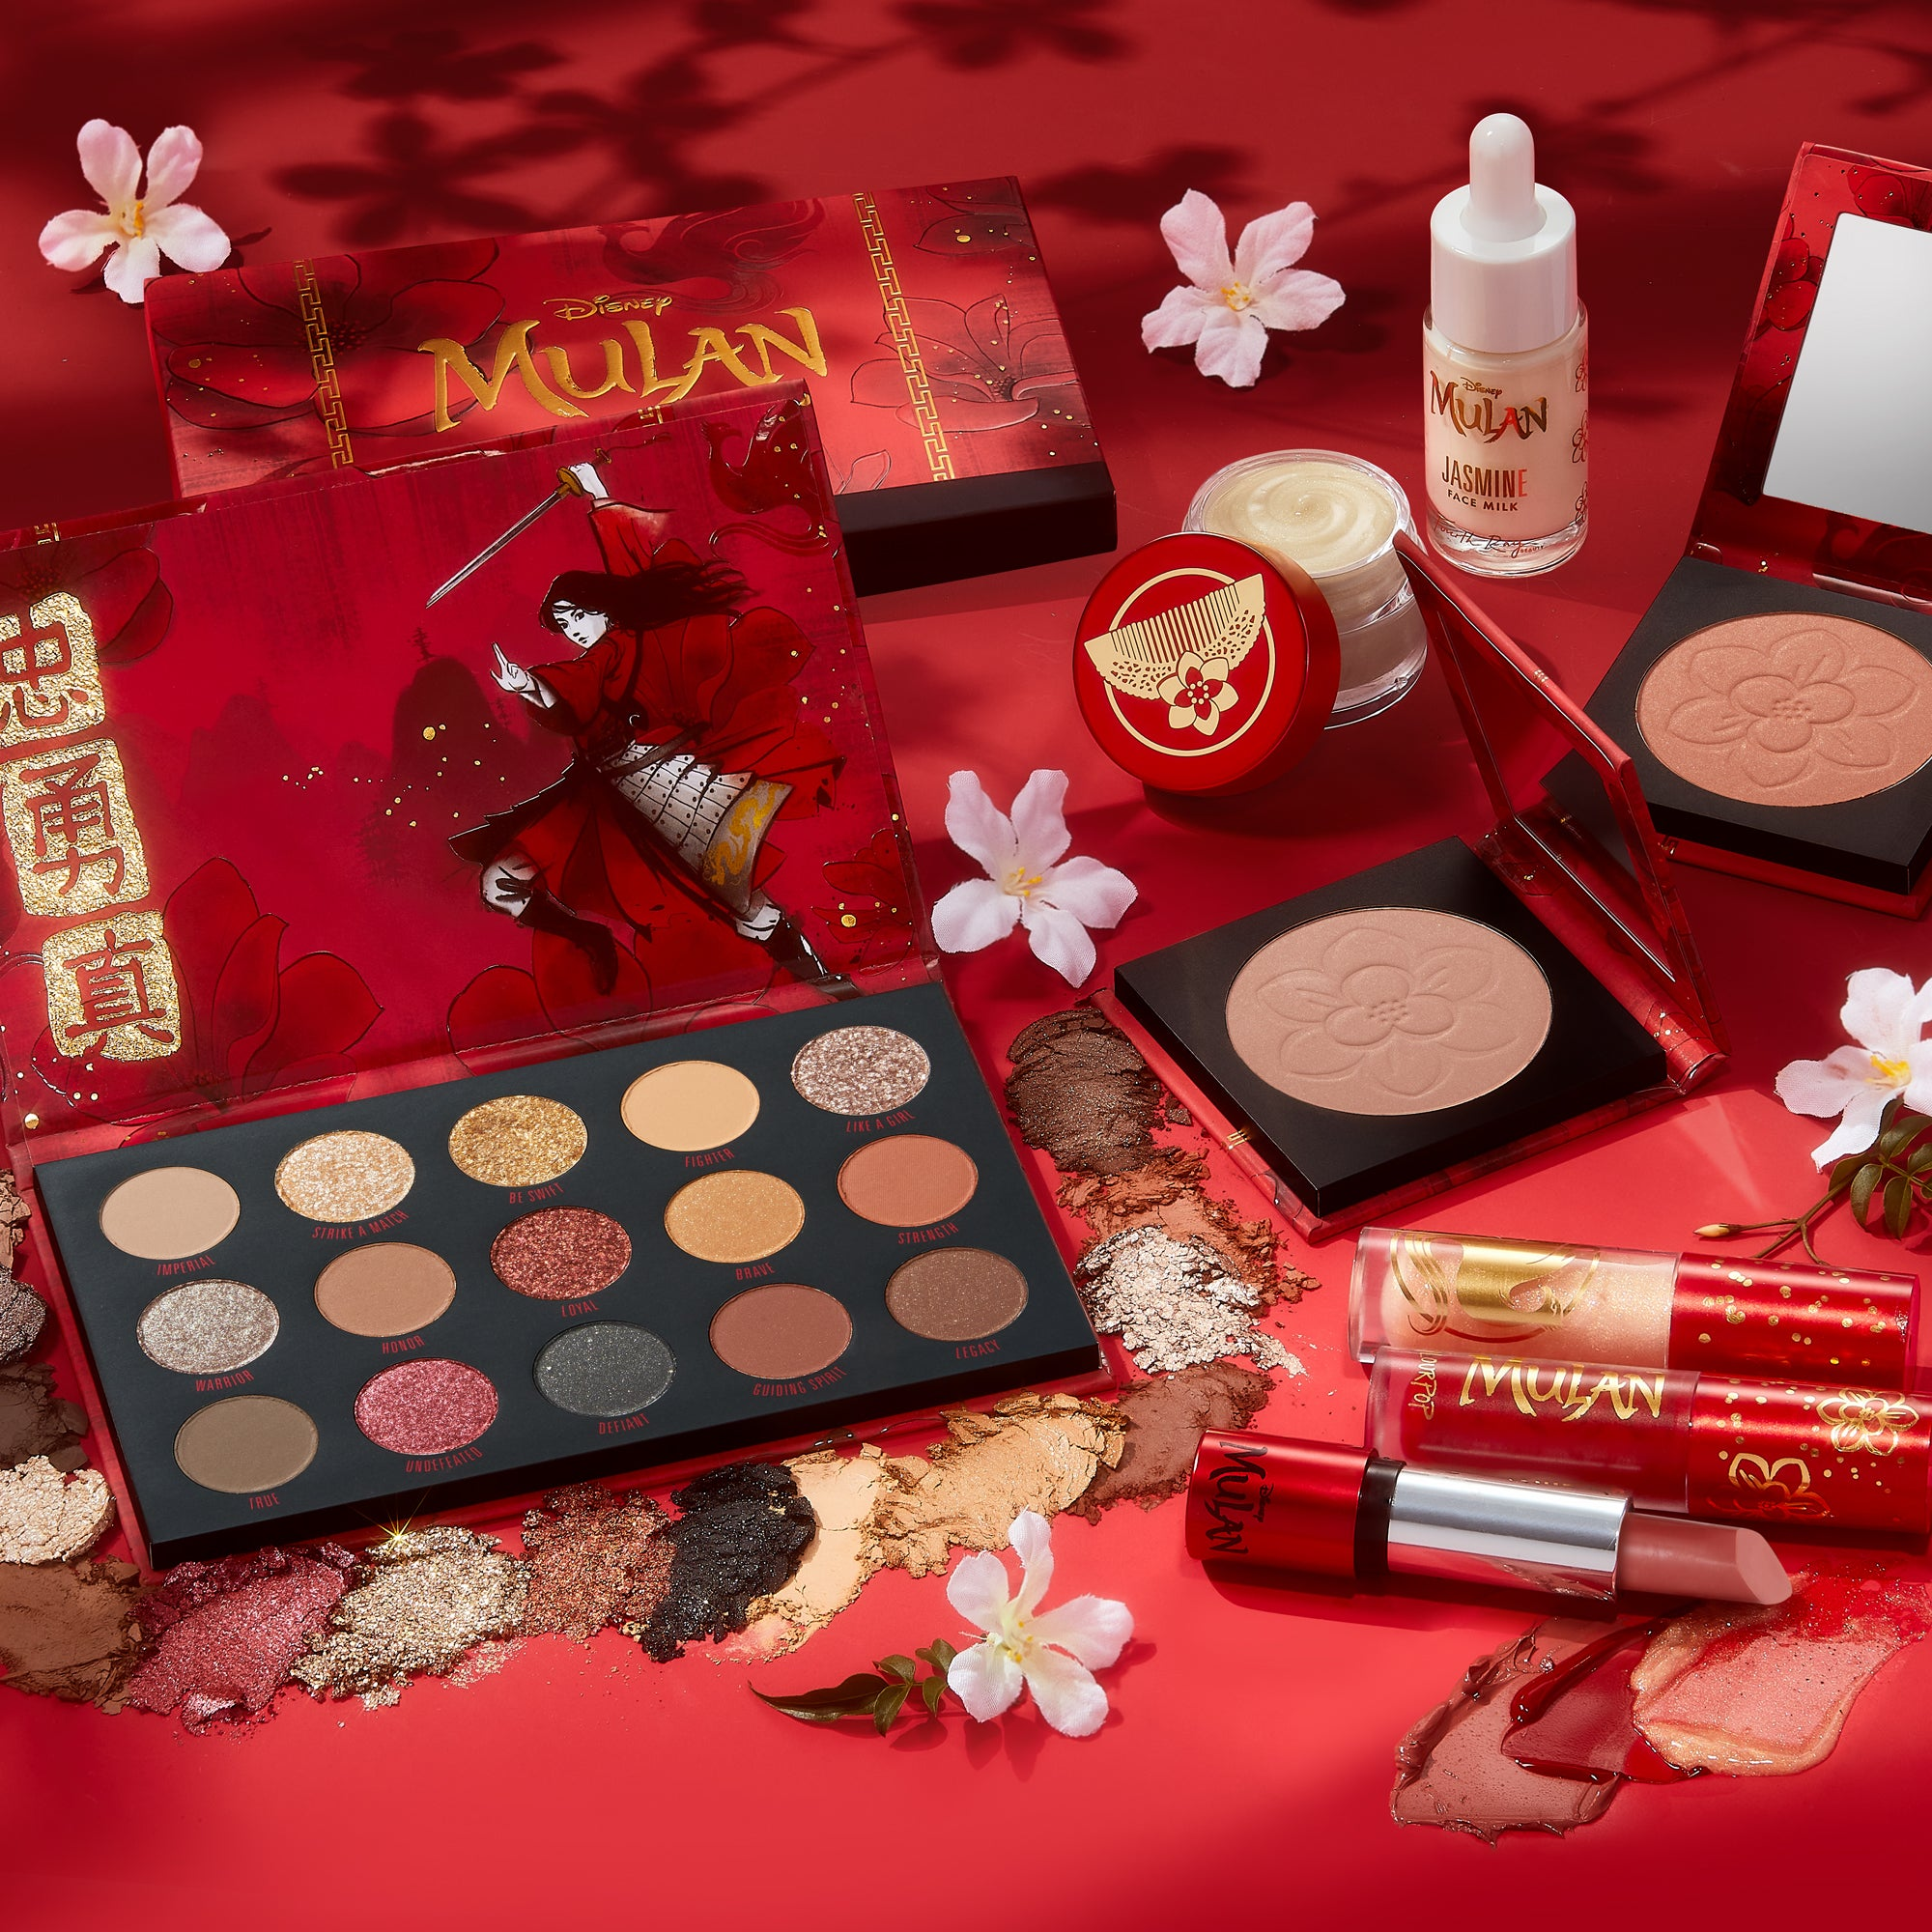 Mulan Collection with all products being displayed